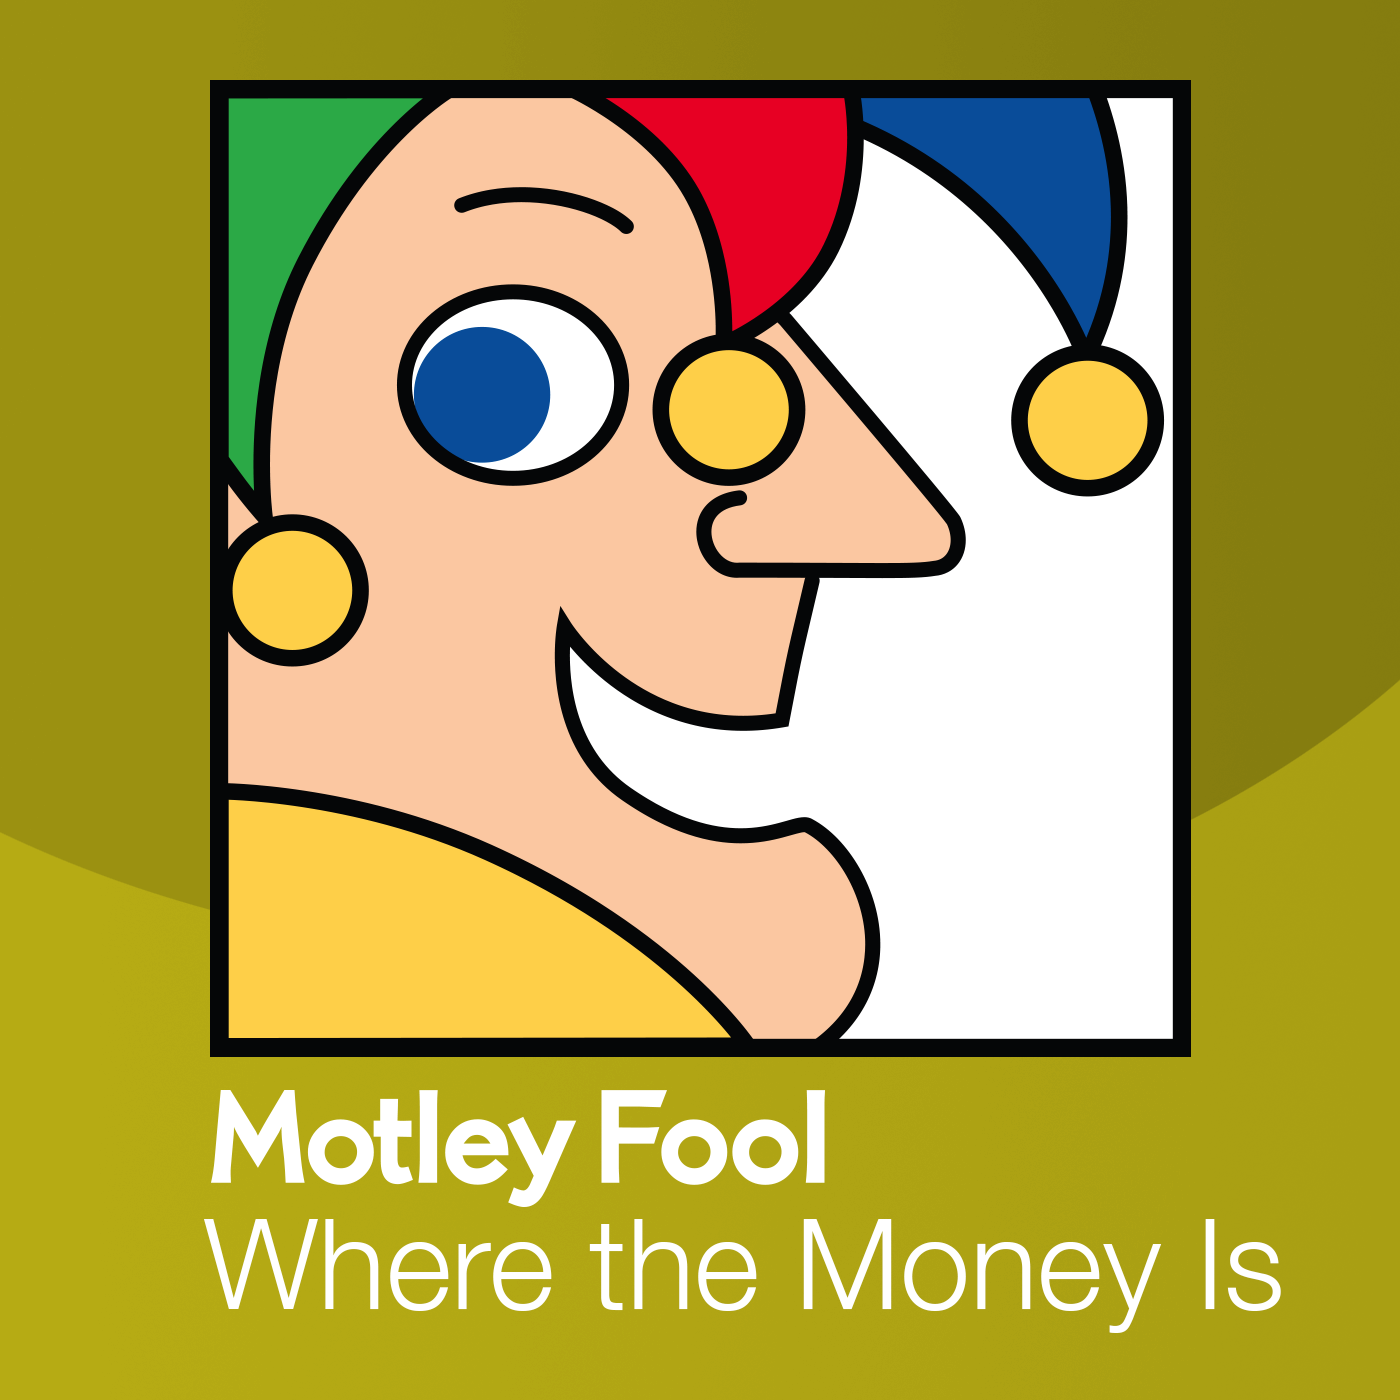 Where the Money Is 04.14.14